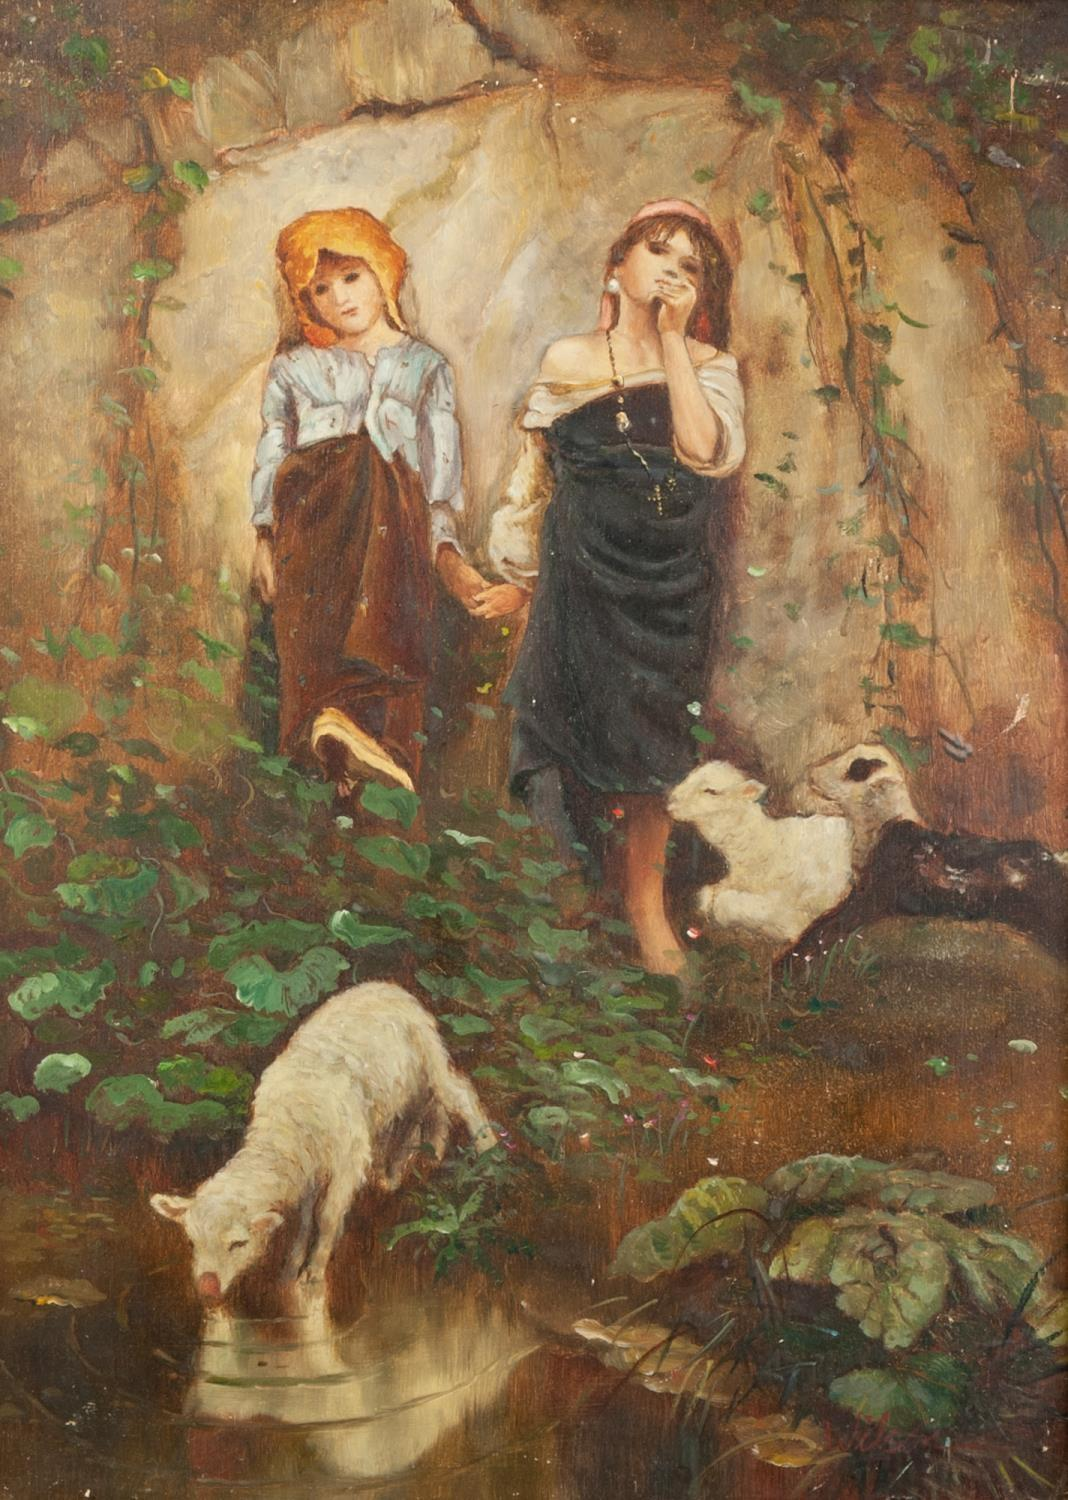 Lot 252 - FROM THE ORIGINAL, MID 20th CENTURY OIL PAINTING ON PANEL Two children by a pond with lambs, one